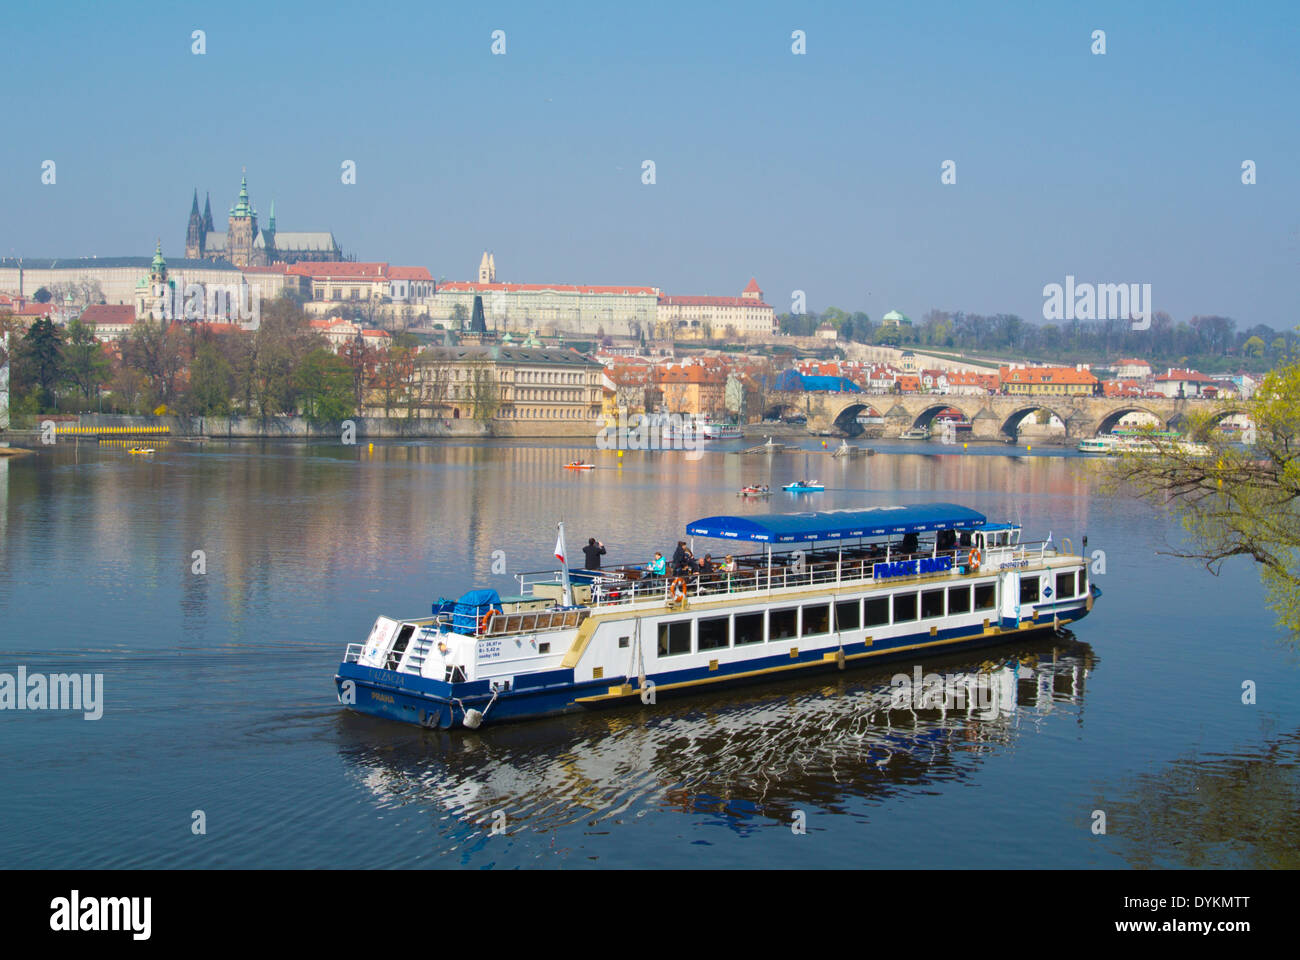 Sightseeing cruise, Vltava river, with Charles Bridge and the Castle in background, Prague, Czech Republic, Europe - Stock Image